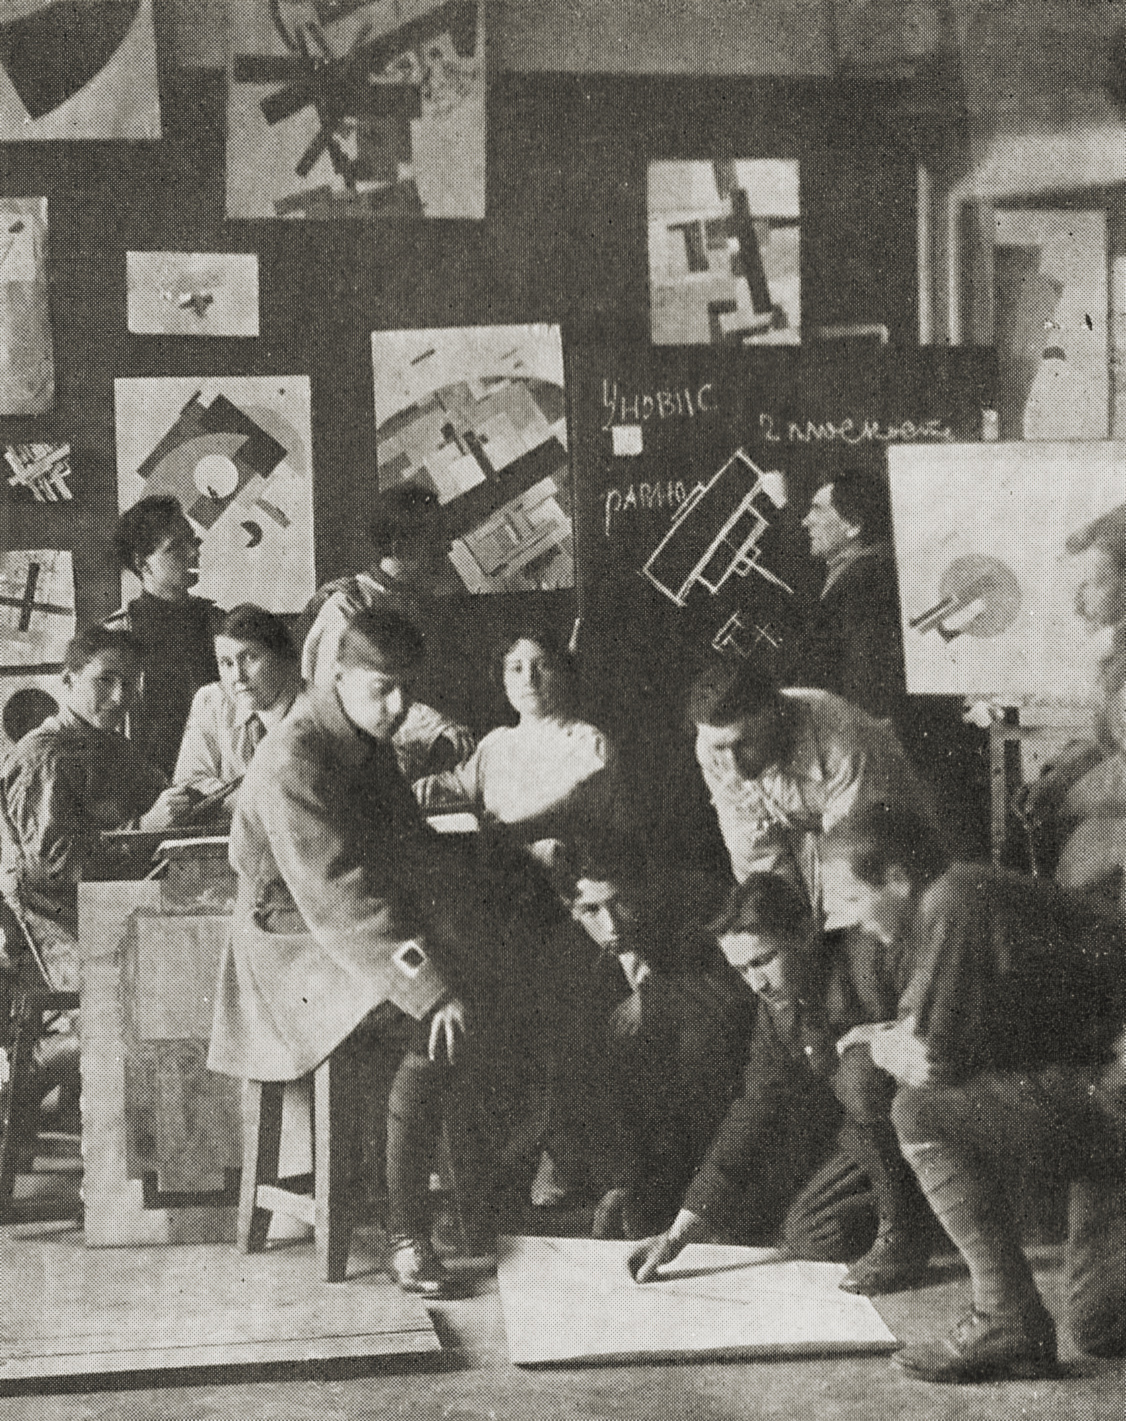 Kazimir Malevich teaching students of UNOVIS, Vitebsk, 1925.